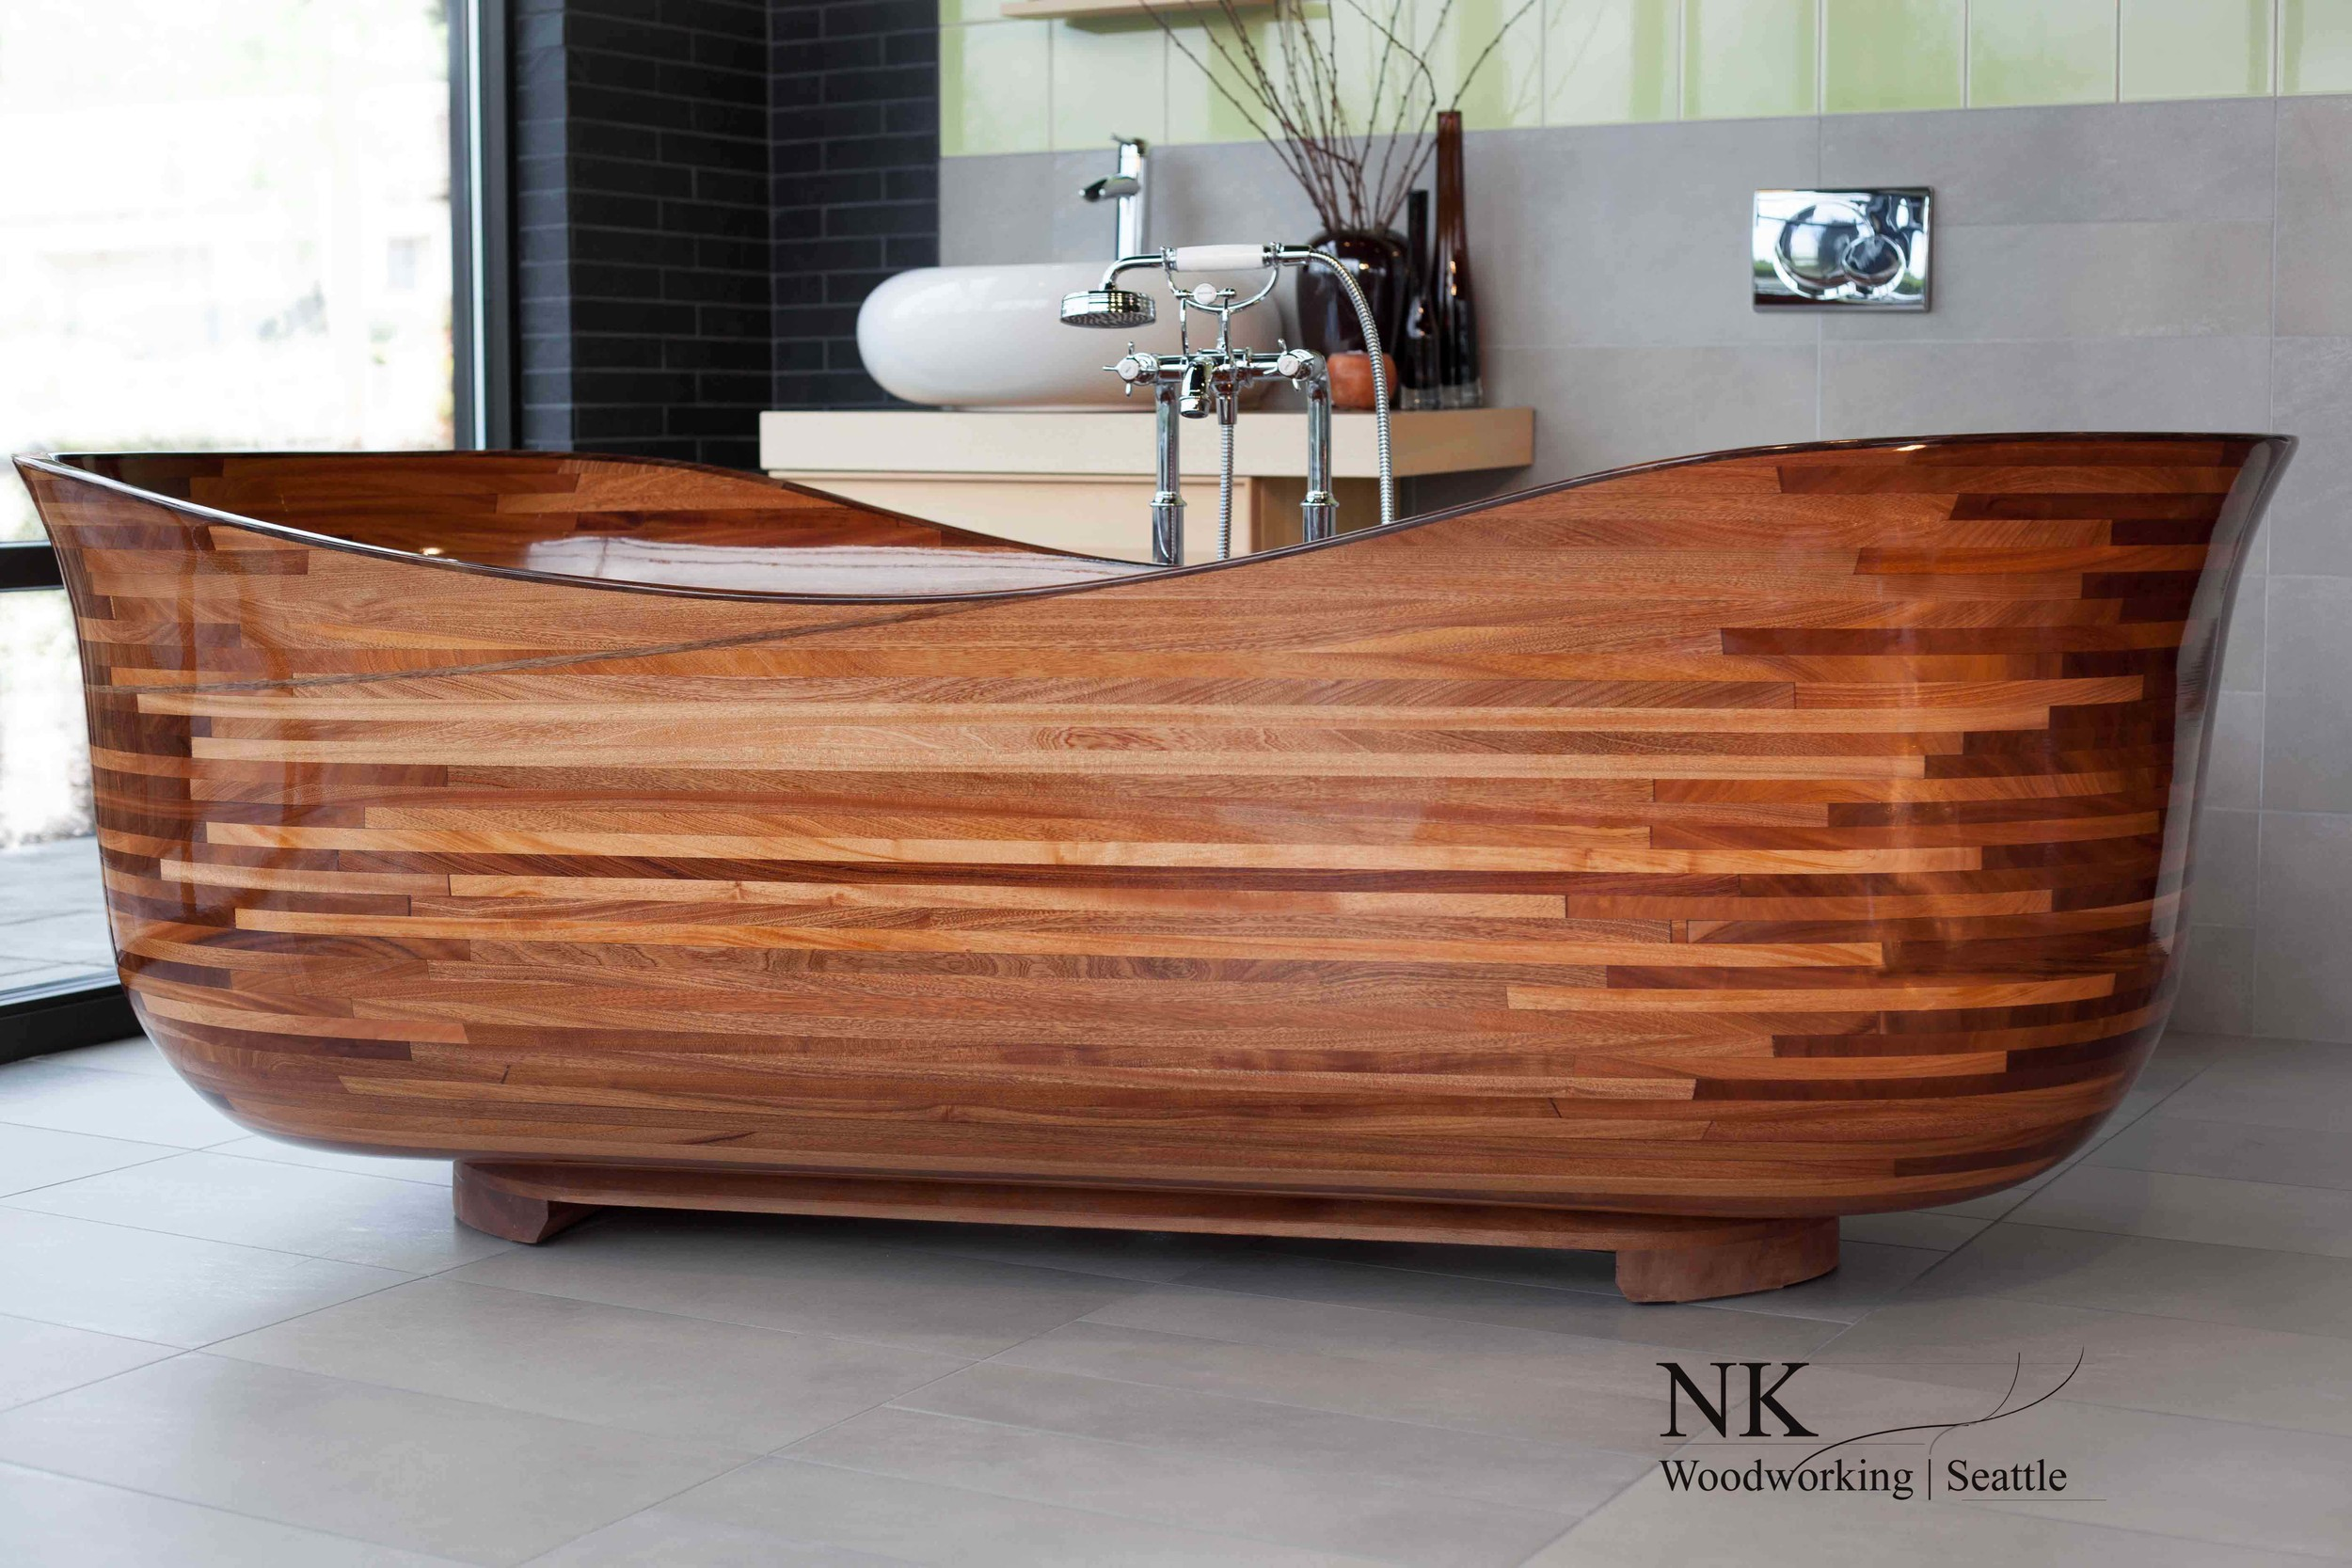 Wood Bathtubs Wooden Bath Sculpture By Nk Woodworking Seattle Nk Woodworking Design